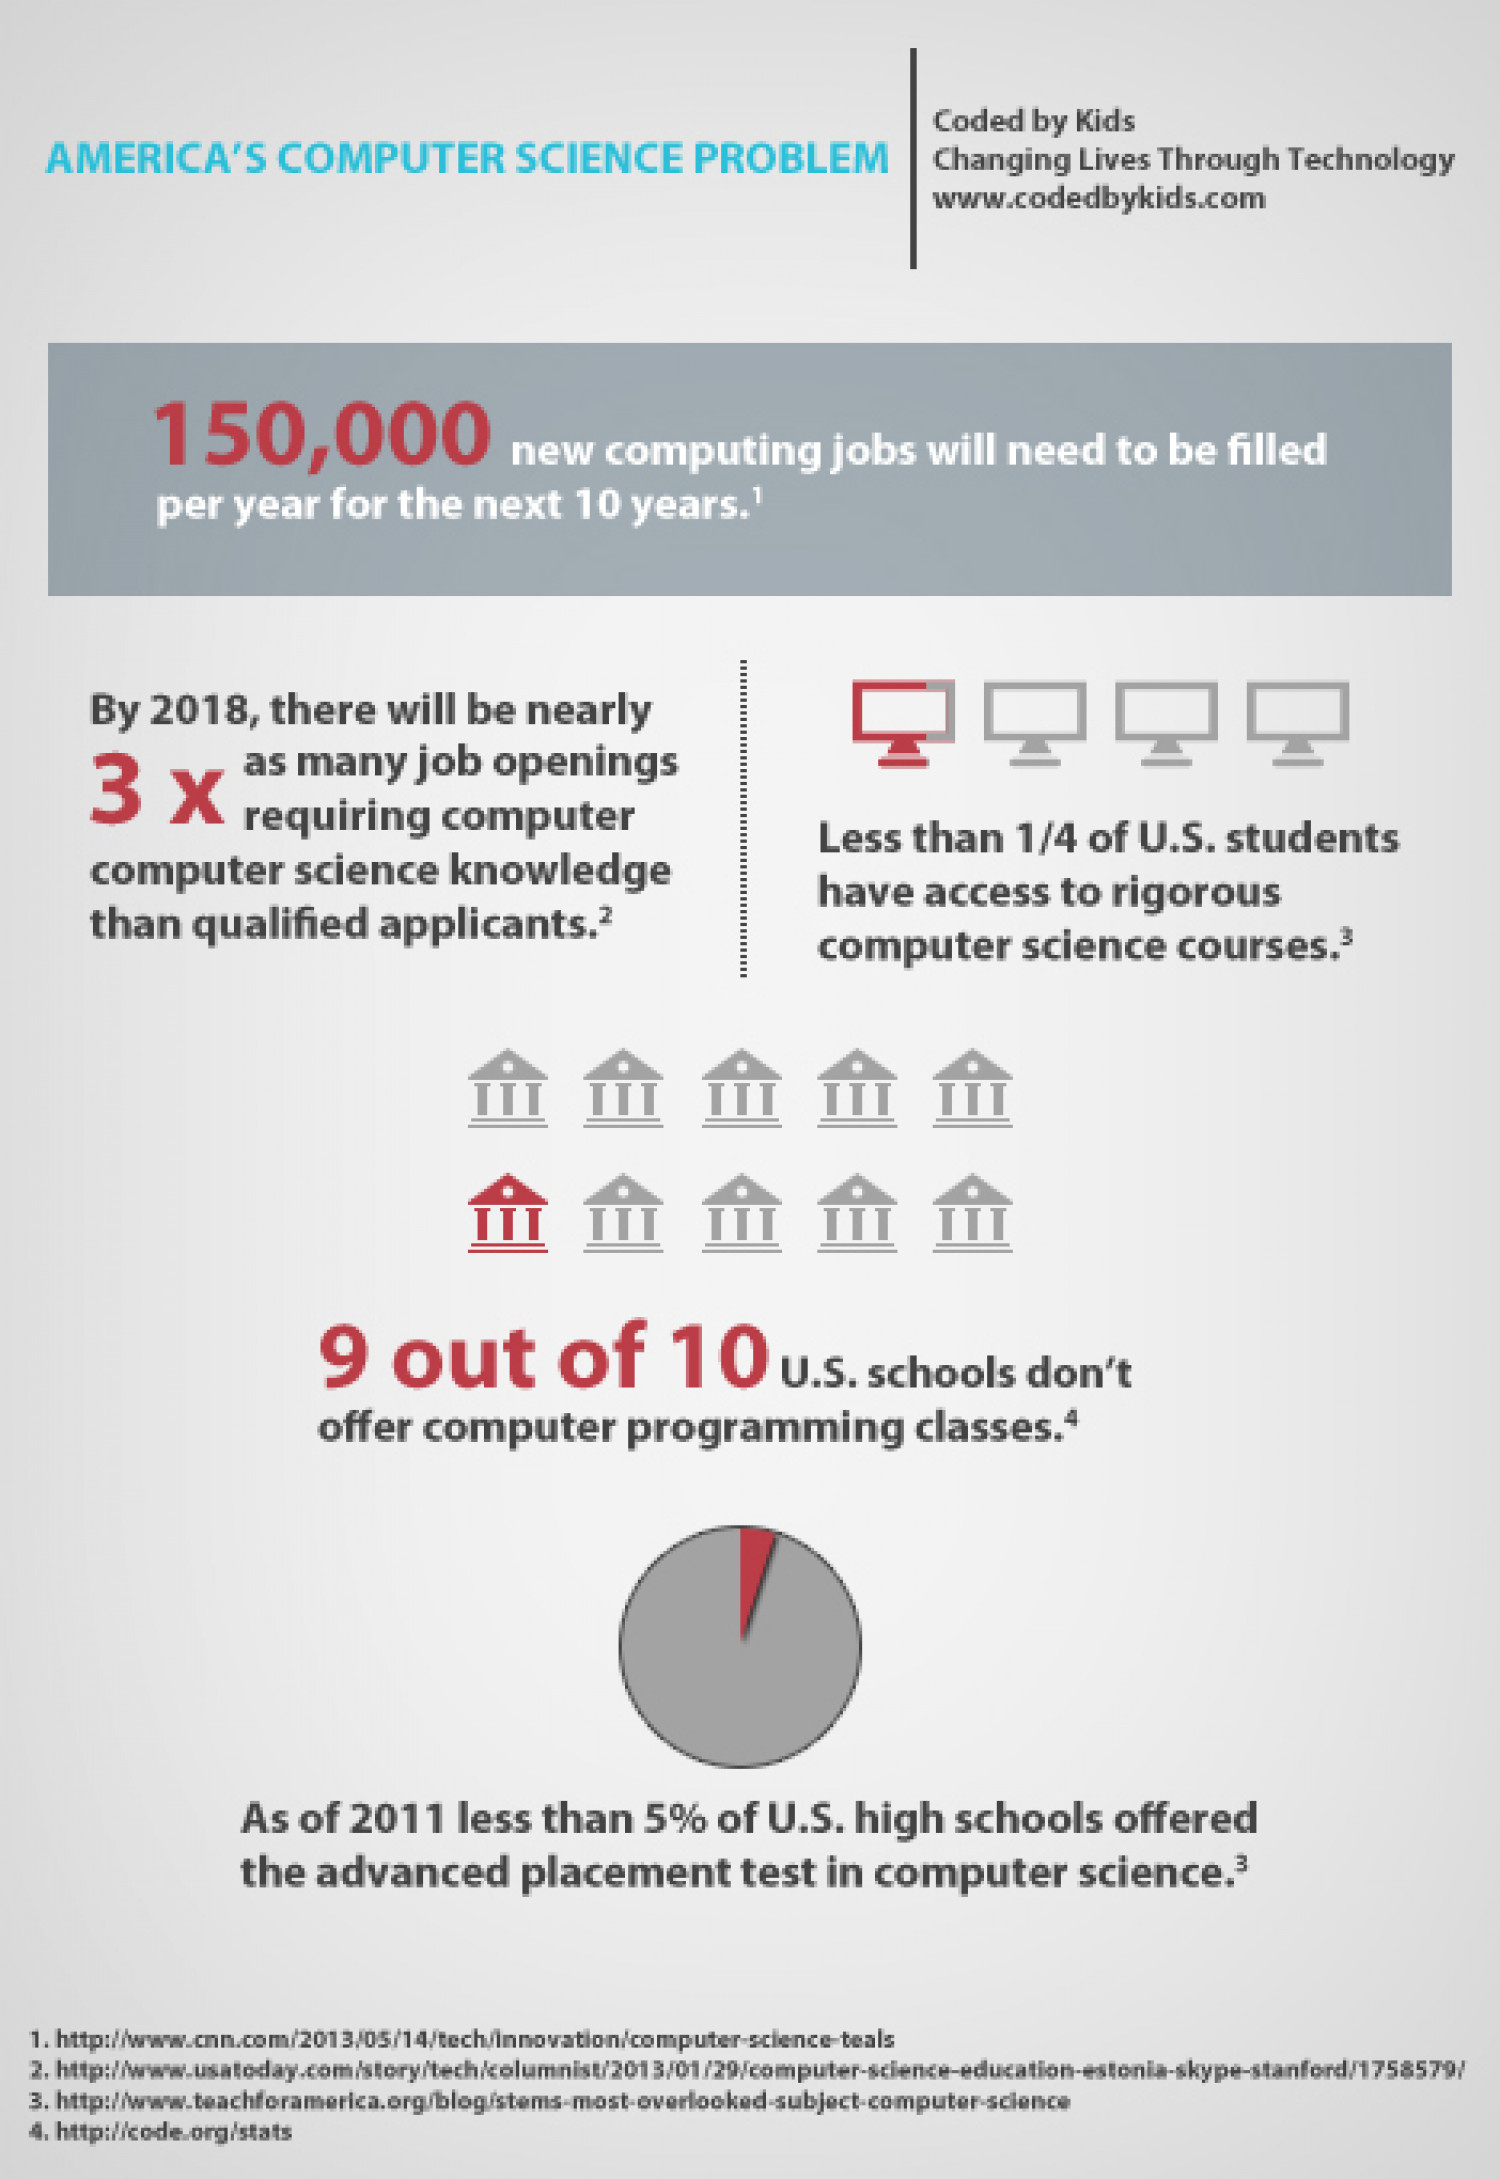 America's Computer Science Problem Infographic